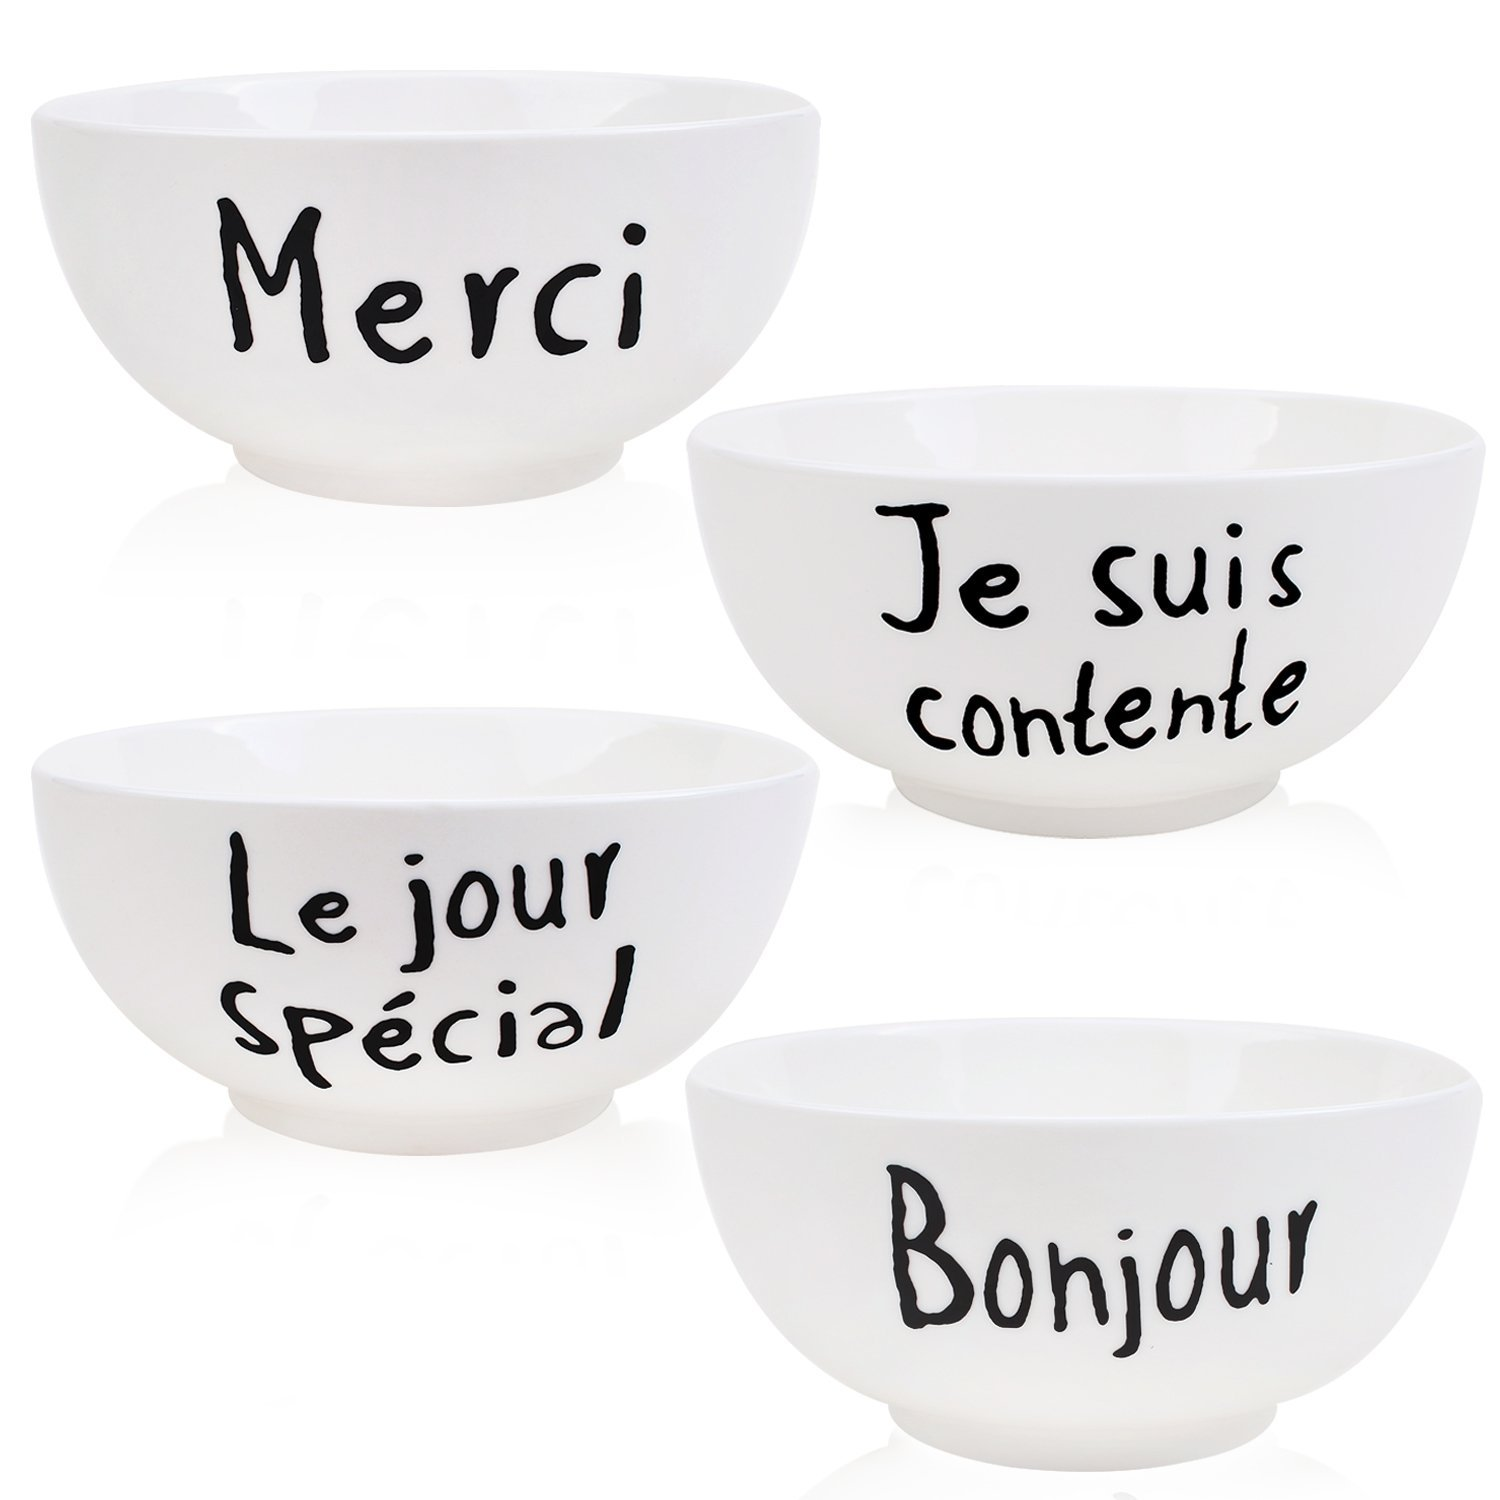 White Porcelain Deep Bowls for Cereal Soup and Salad, Assorted French Words Patterns, 25-Ounce Set of 4